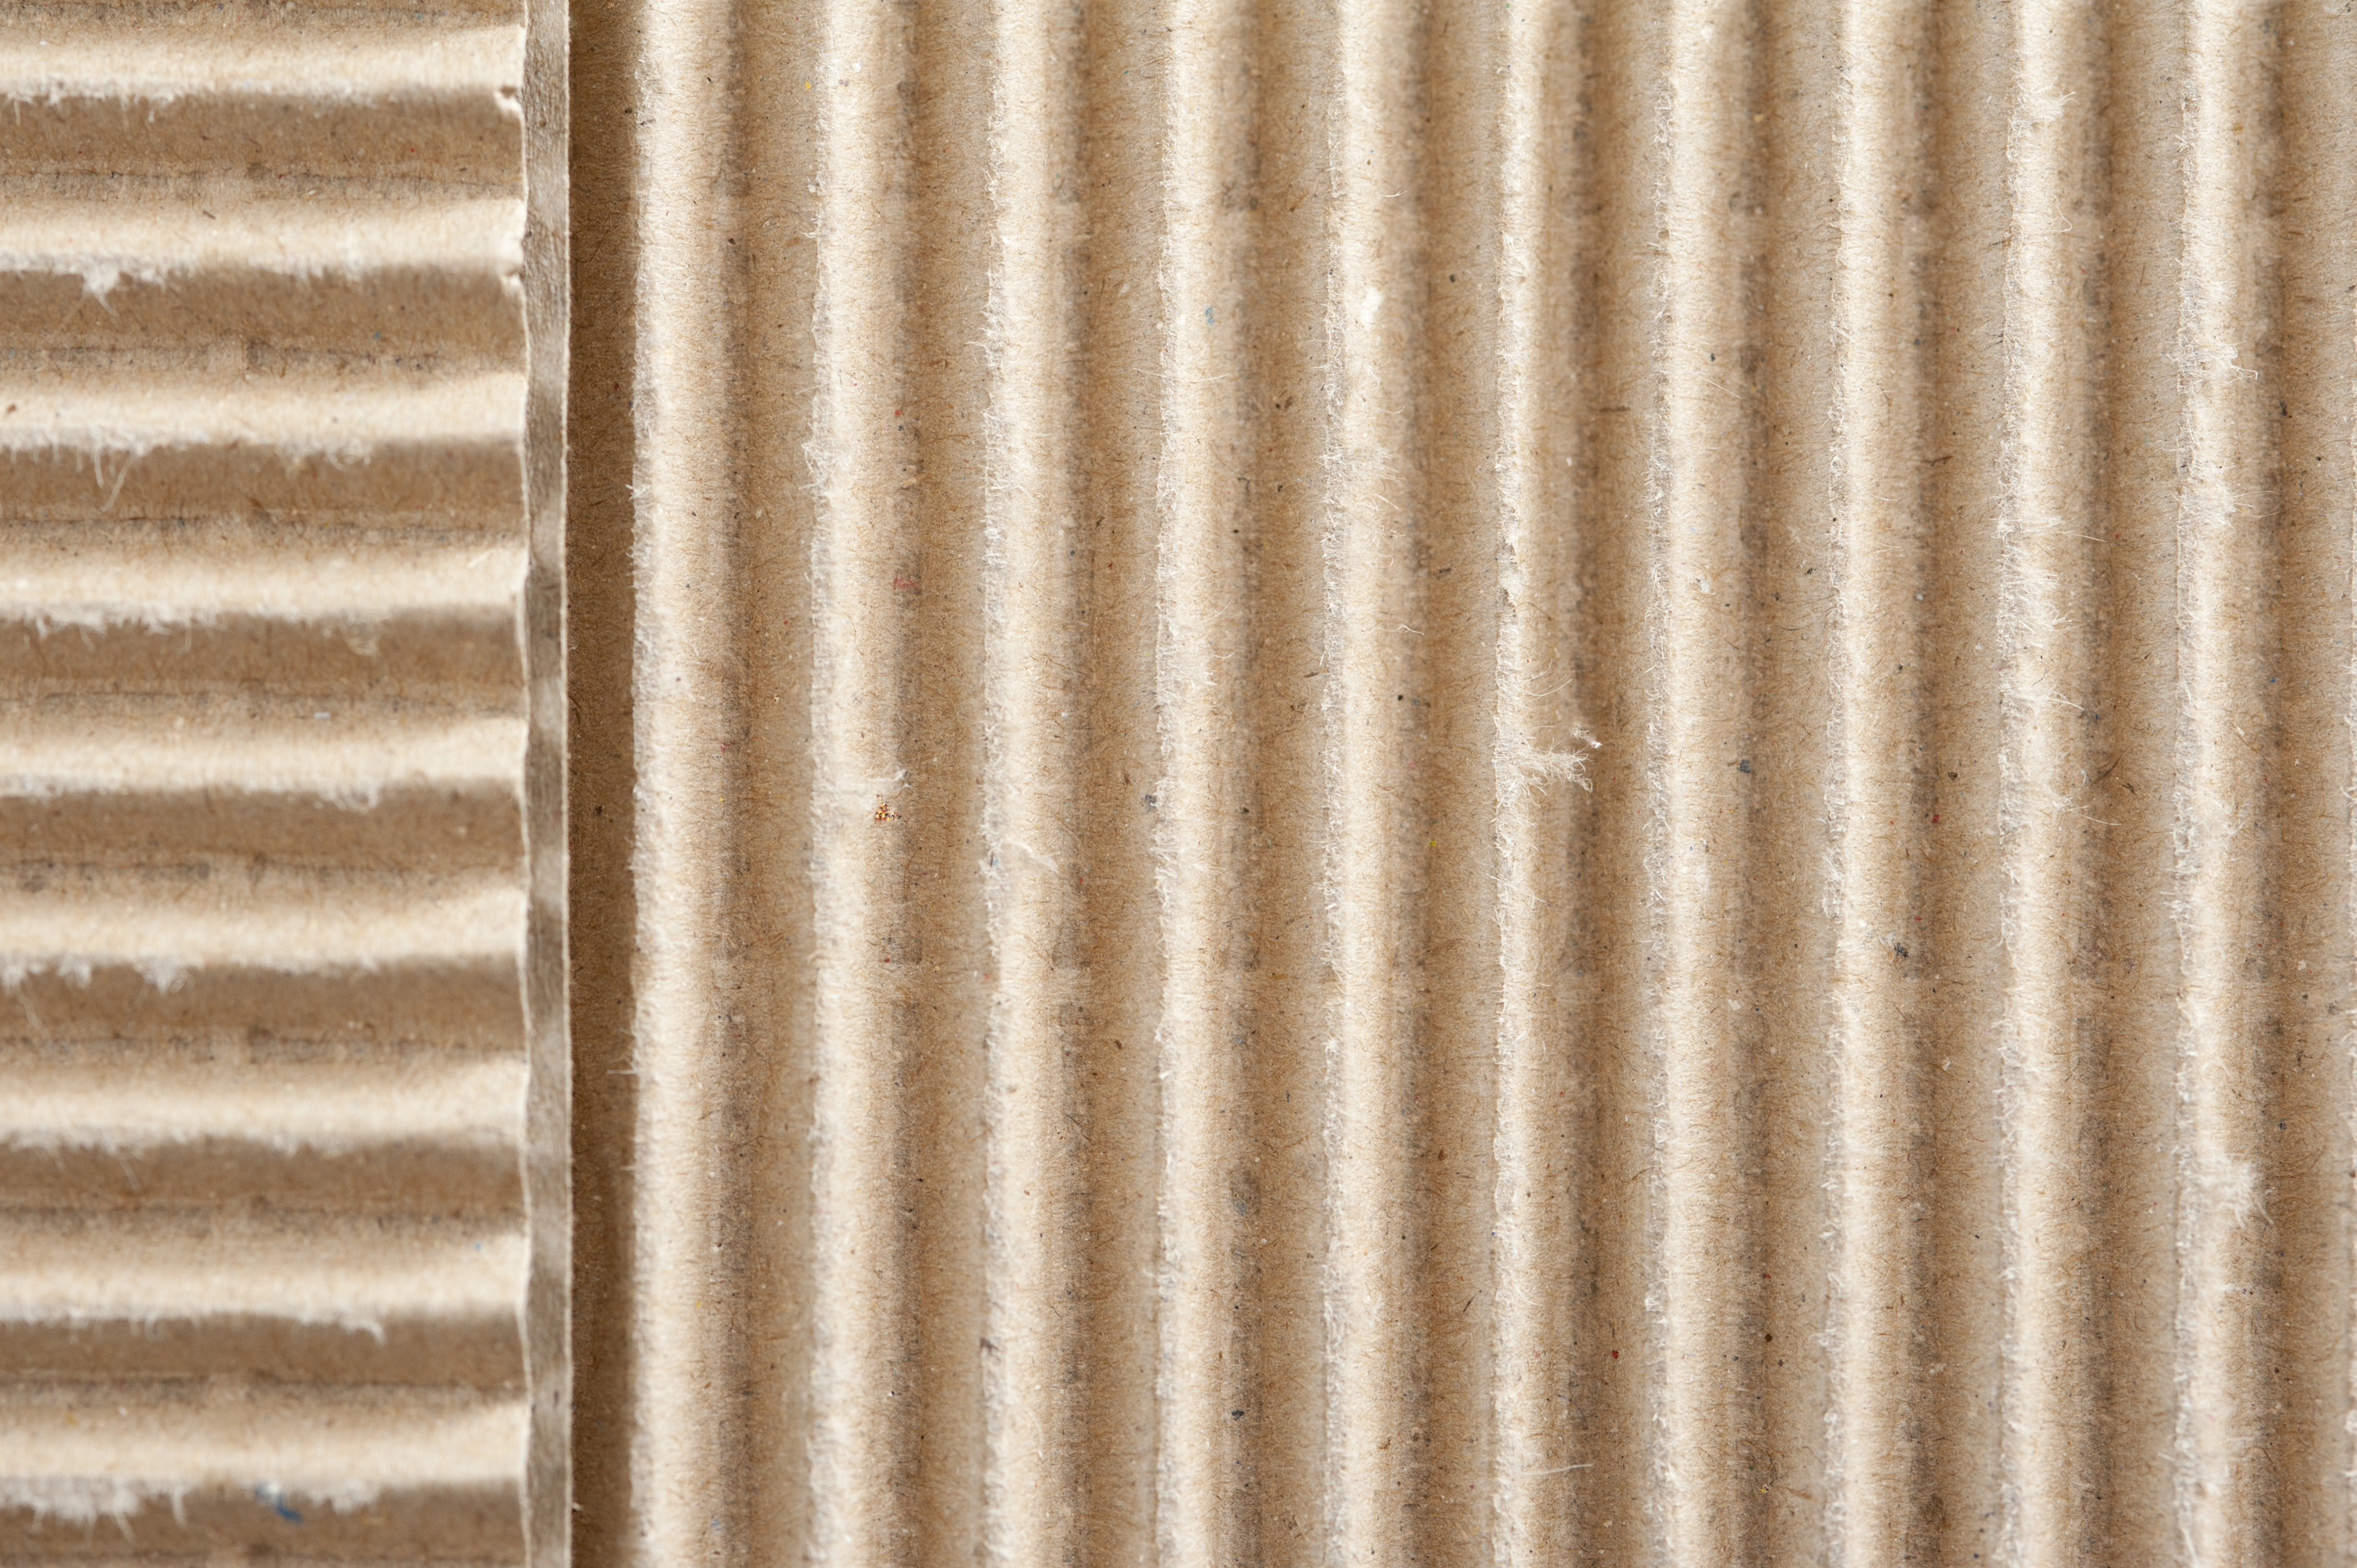 Two corrugated surfaces of brown paper packaging material set at right angles to each other in an overhead full frame background texture view